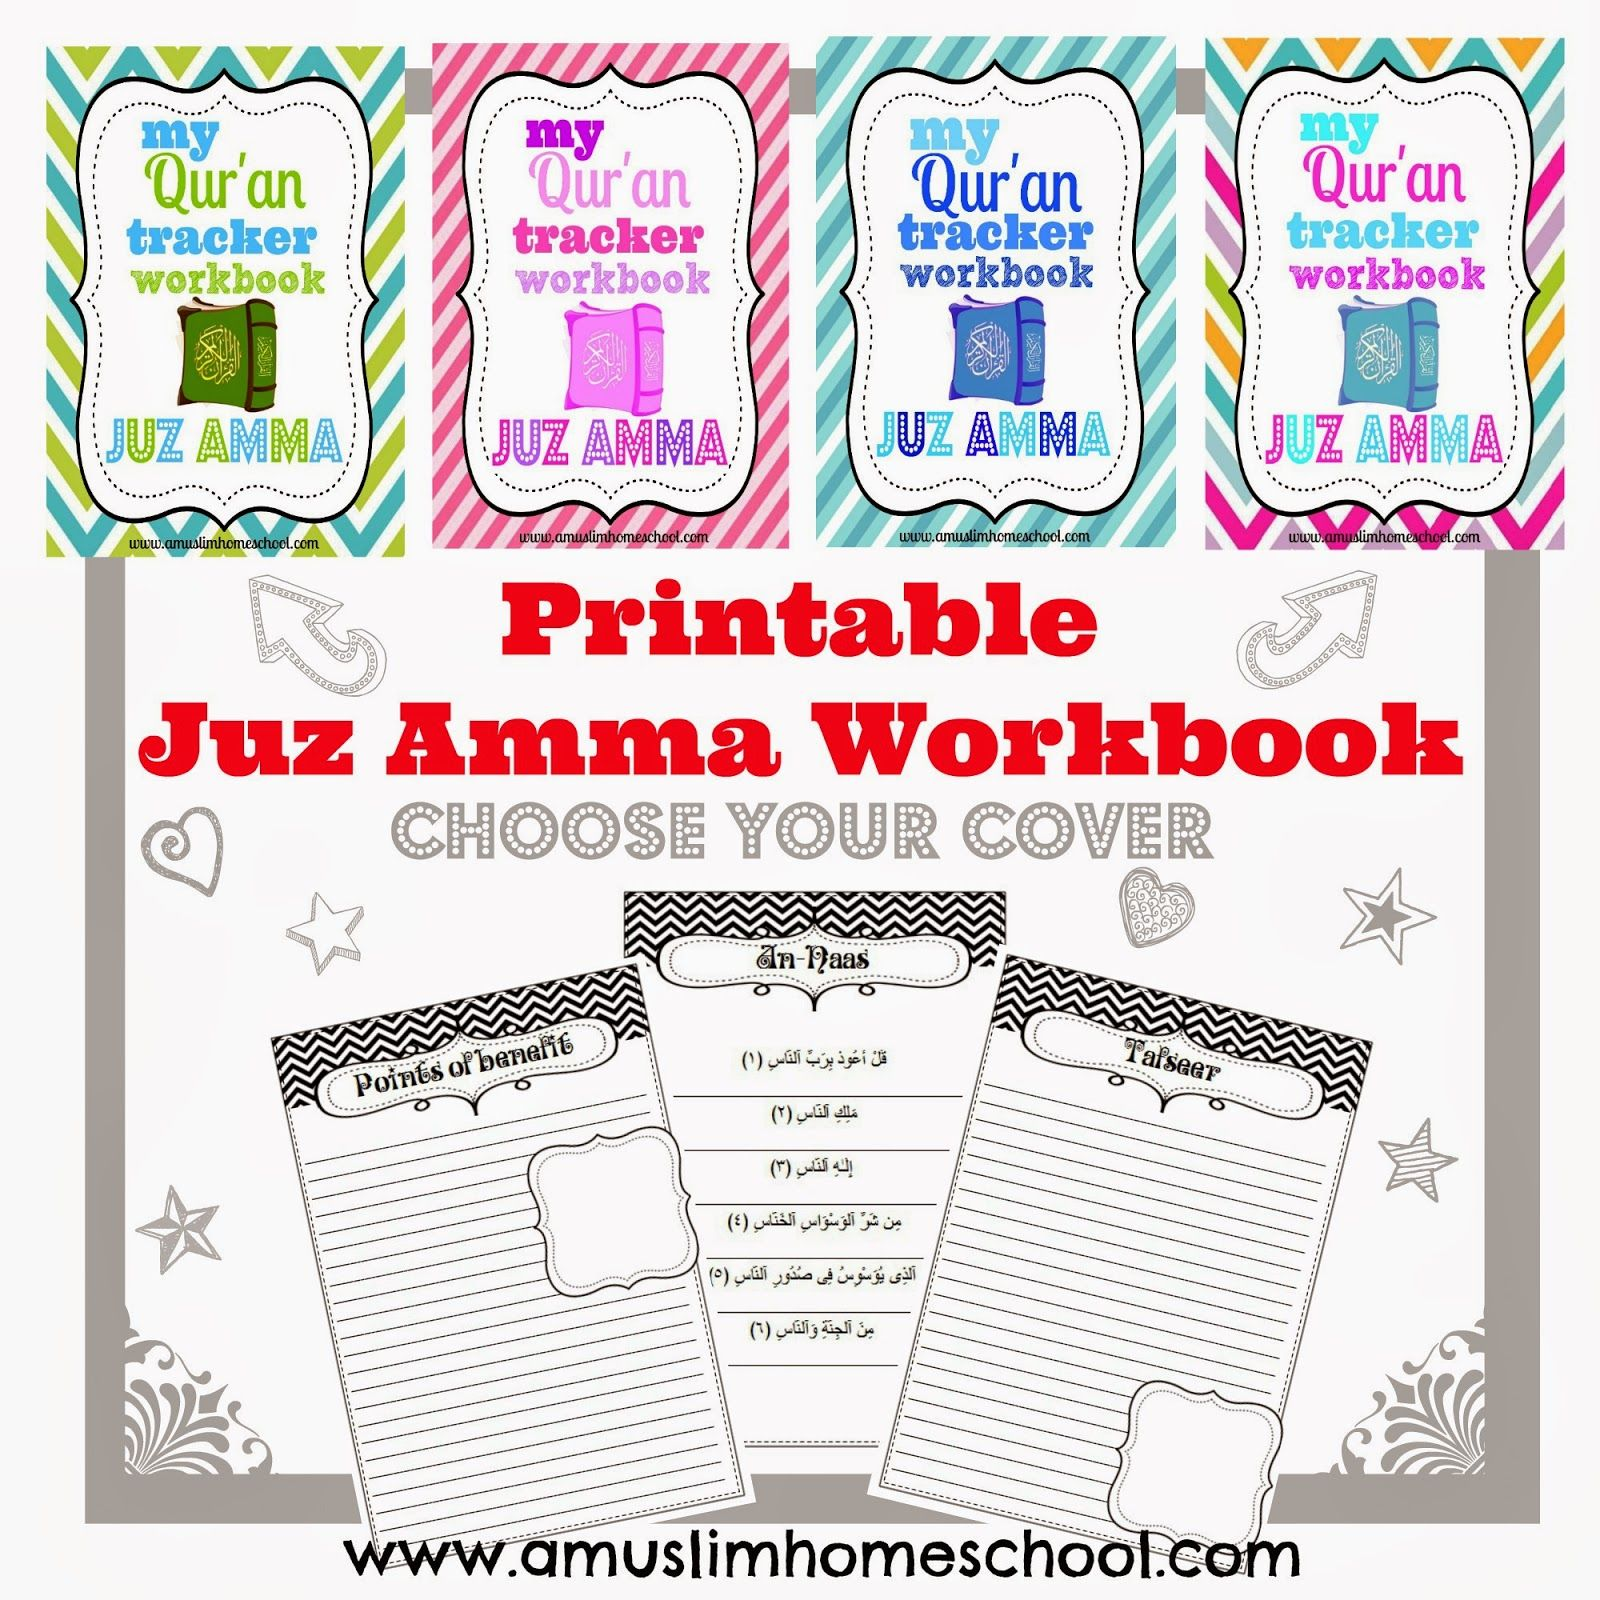 New download links for the Juz Amma Workbook | Projects to